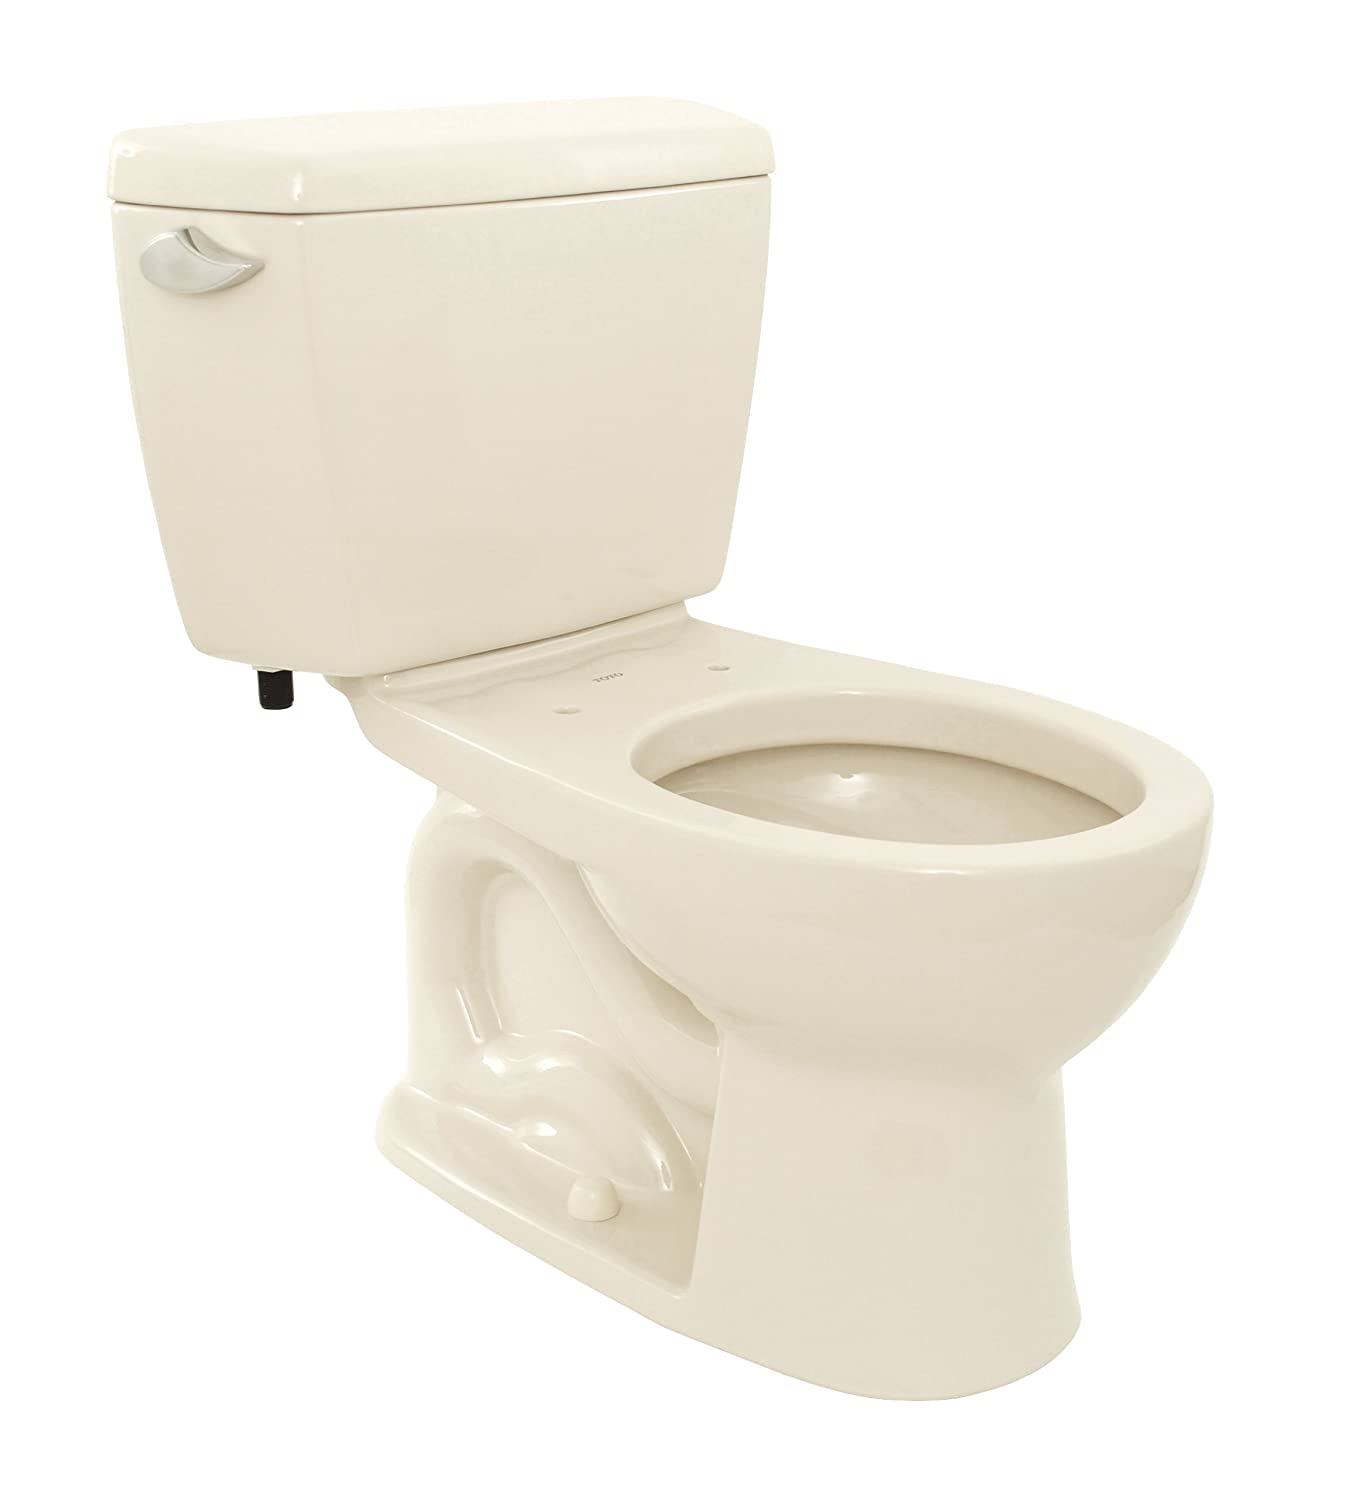 TOTO CST743S 01 Drake Round Bowl and Tank Cotton White Toilet